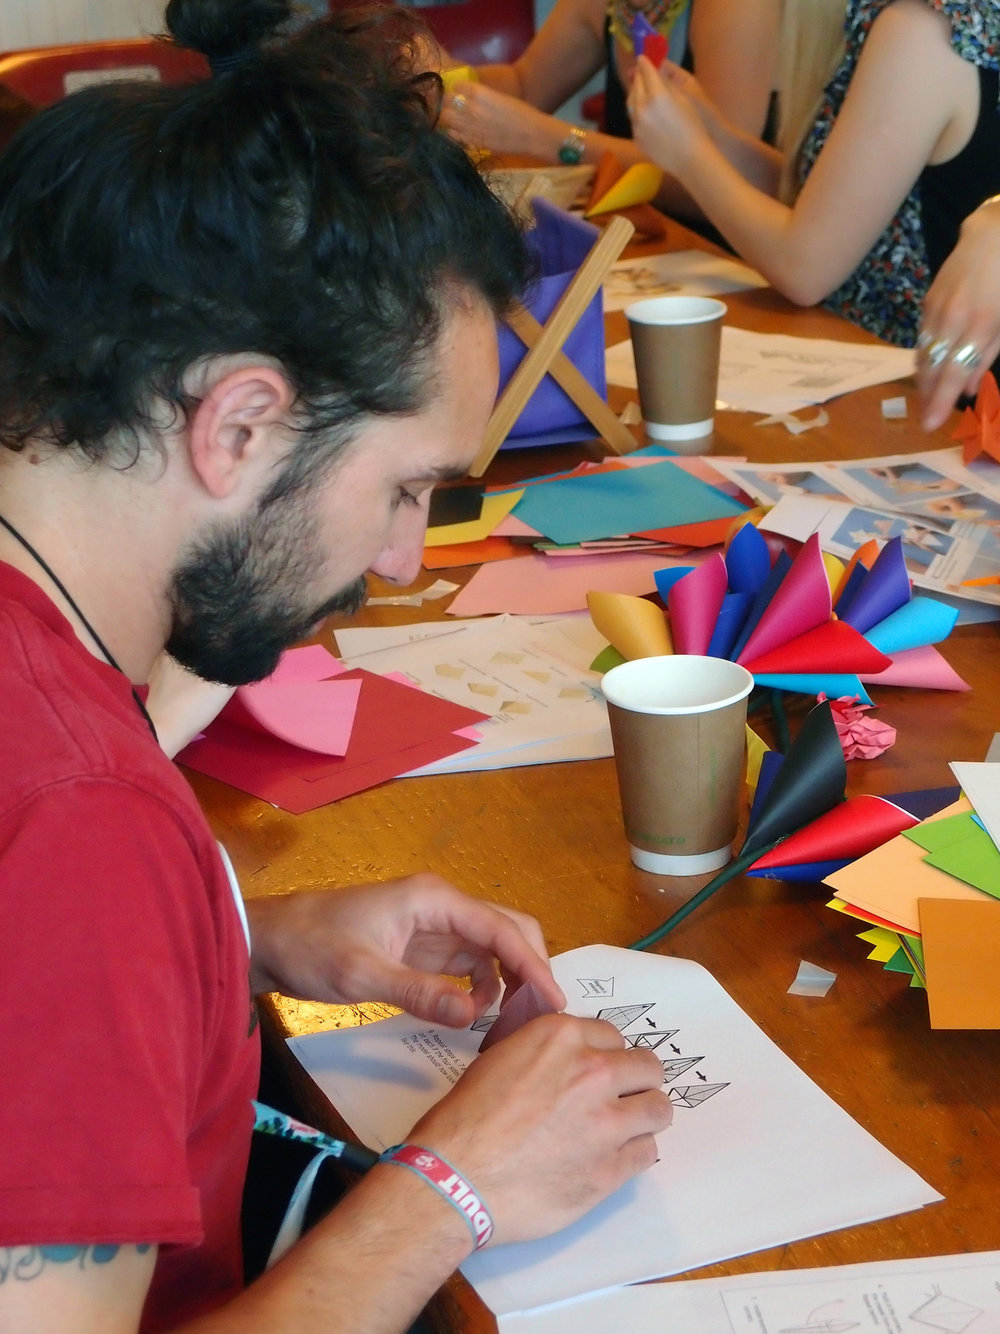 Origami Creative Team Building Craft Workshop Idea